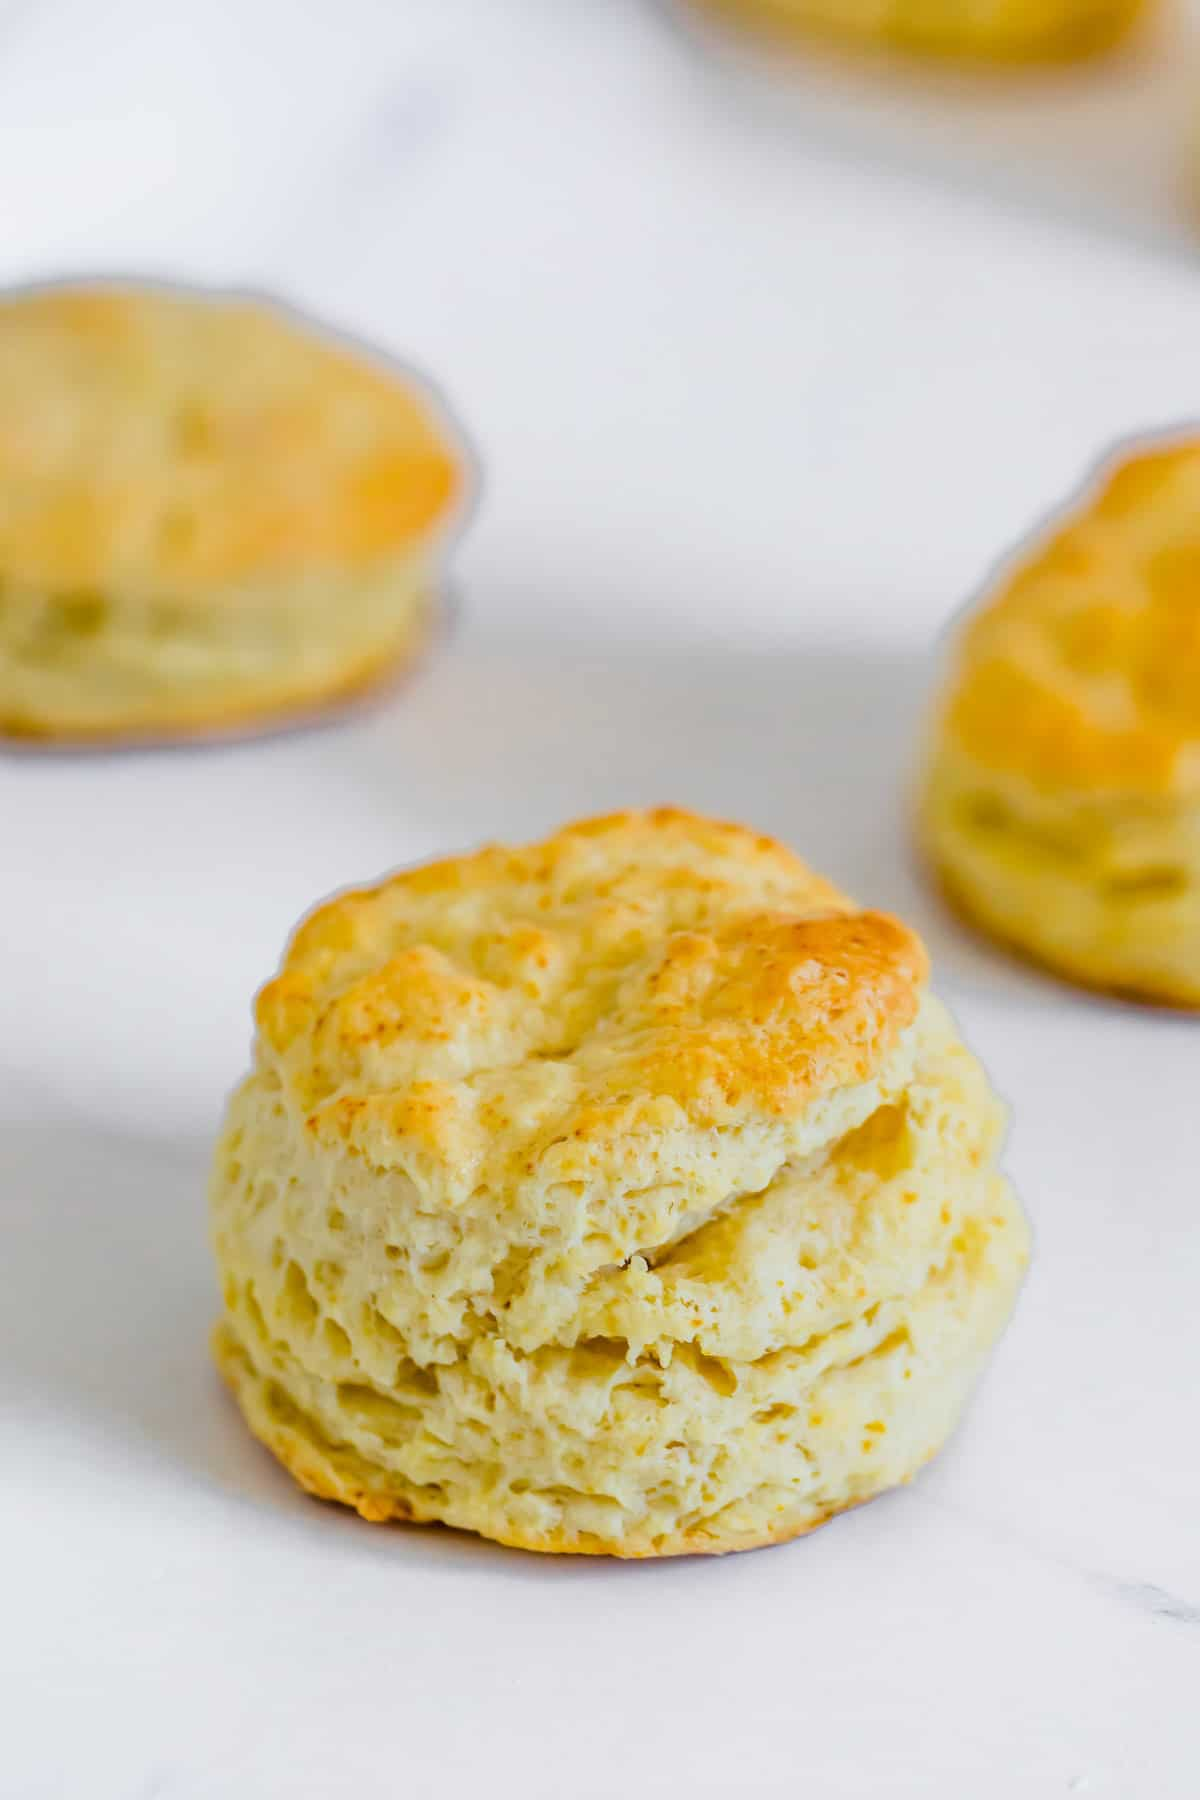 A Golden Gluten-Free Sweet Biscuit on a White Marble Countertop